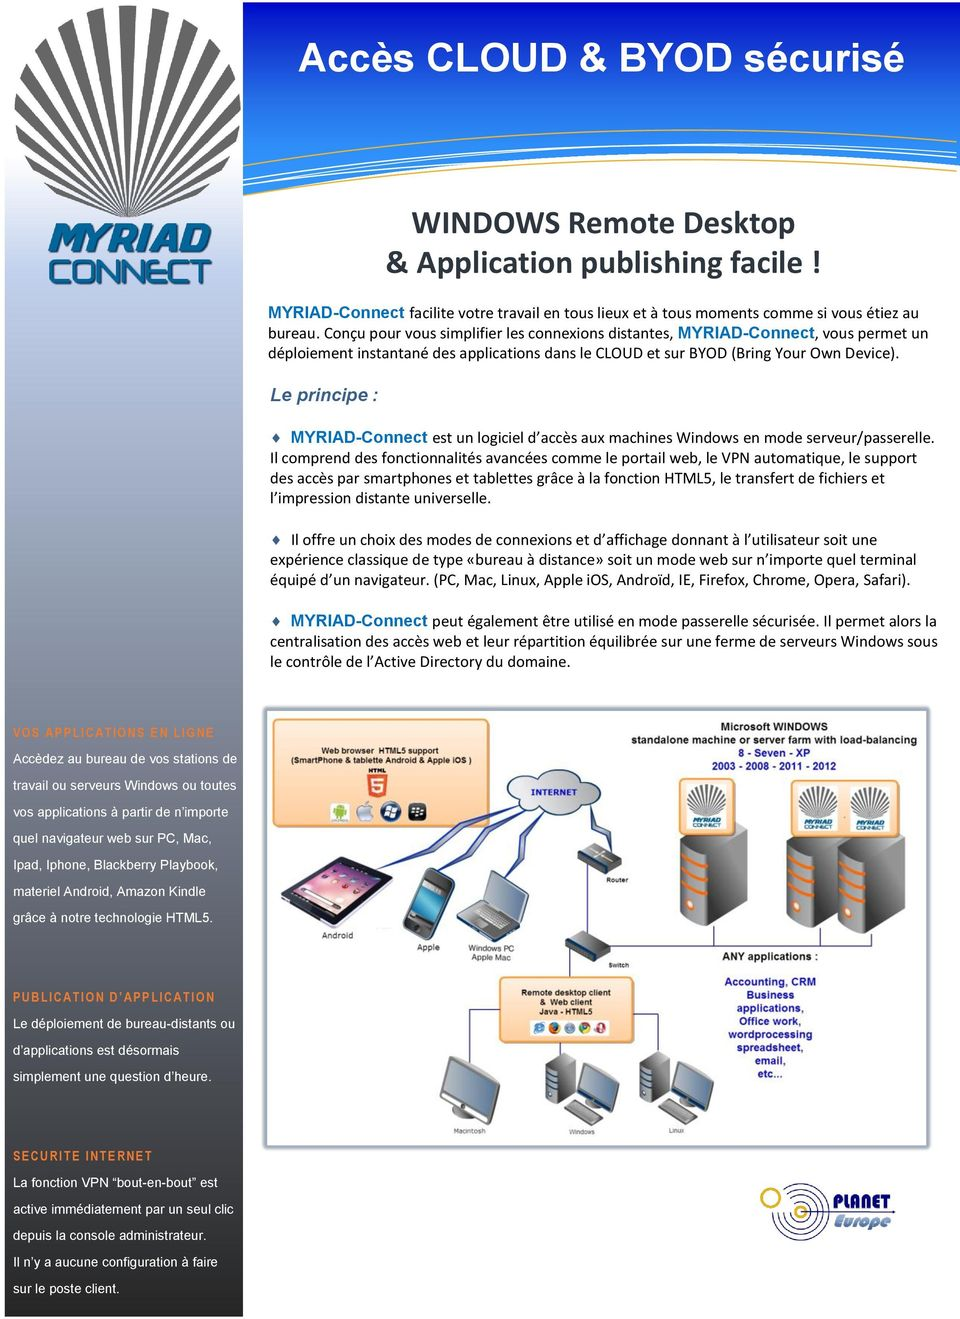 Le principe : WINDOWS Remote Desktop & Application publishing facile! MYRIAD-Connect est un logiciel d accès aux machines Windows en mode serveur/passerelle.